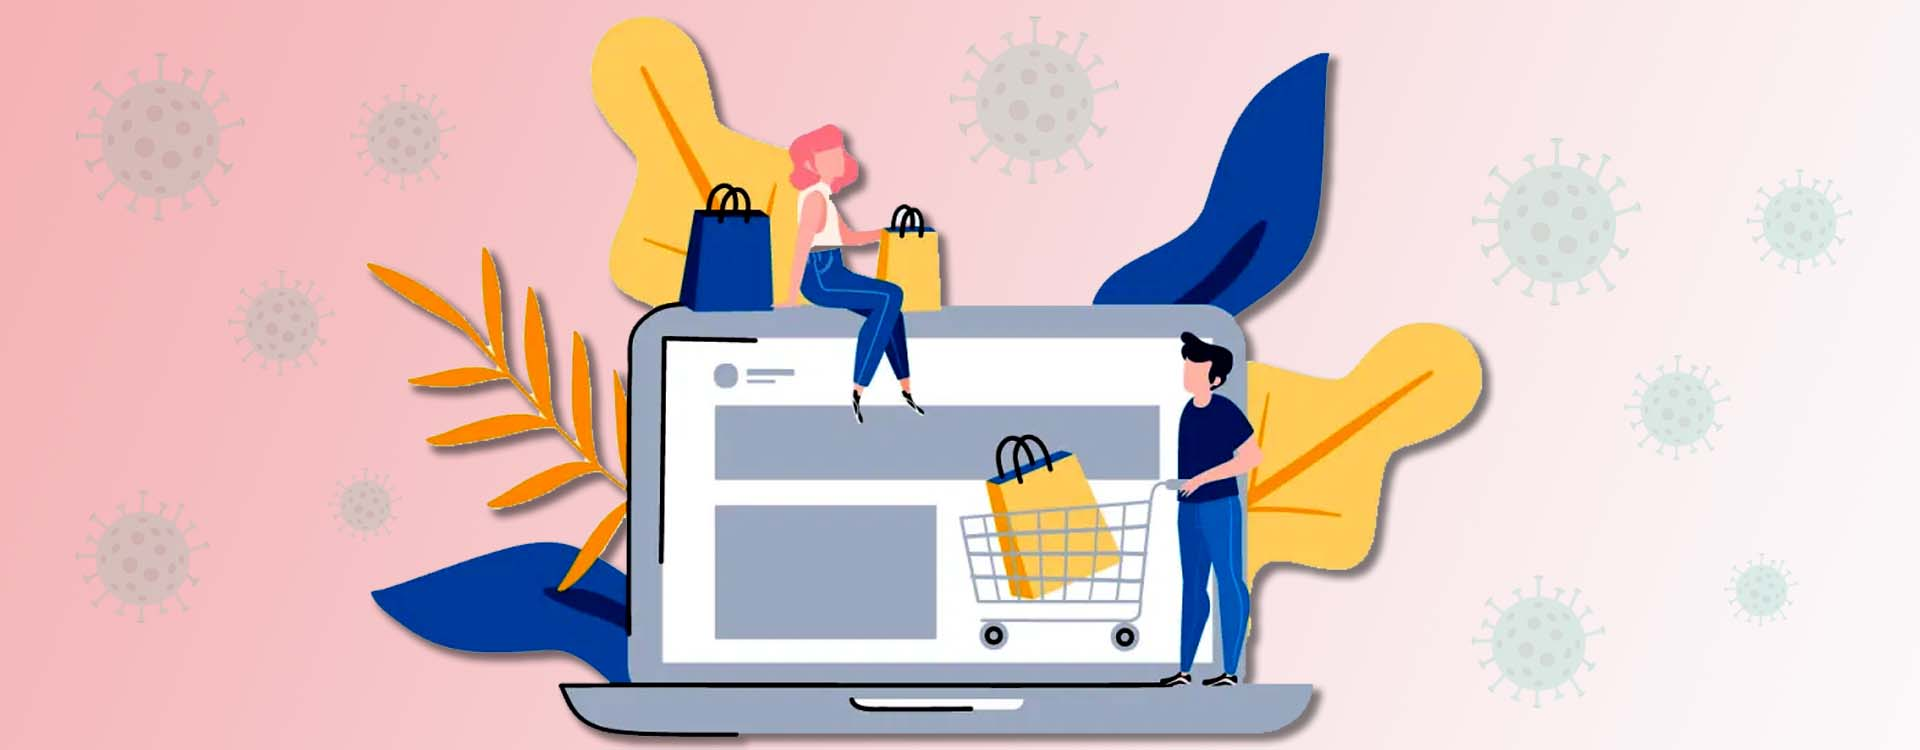 FMCG brands are pivoting to D2C channels to generate revenues and unlock new customers.